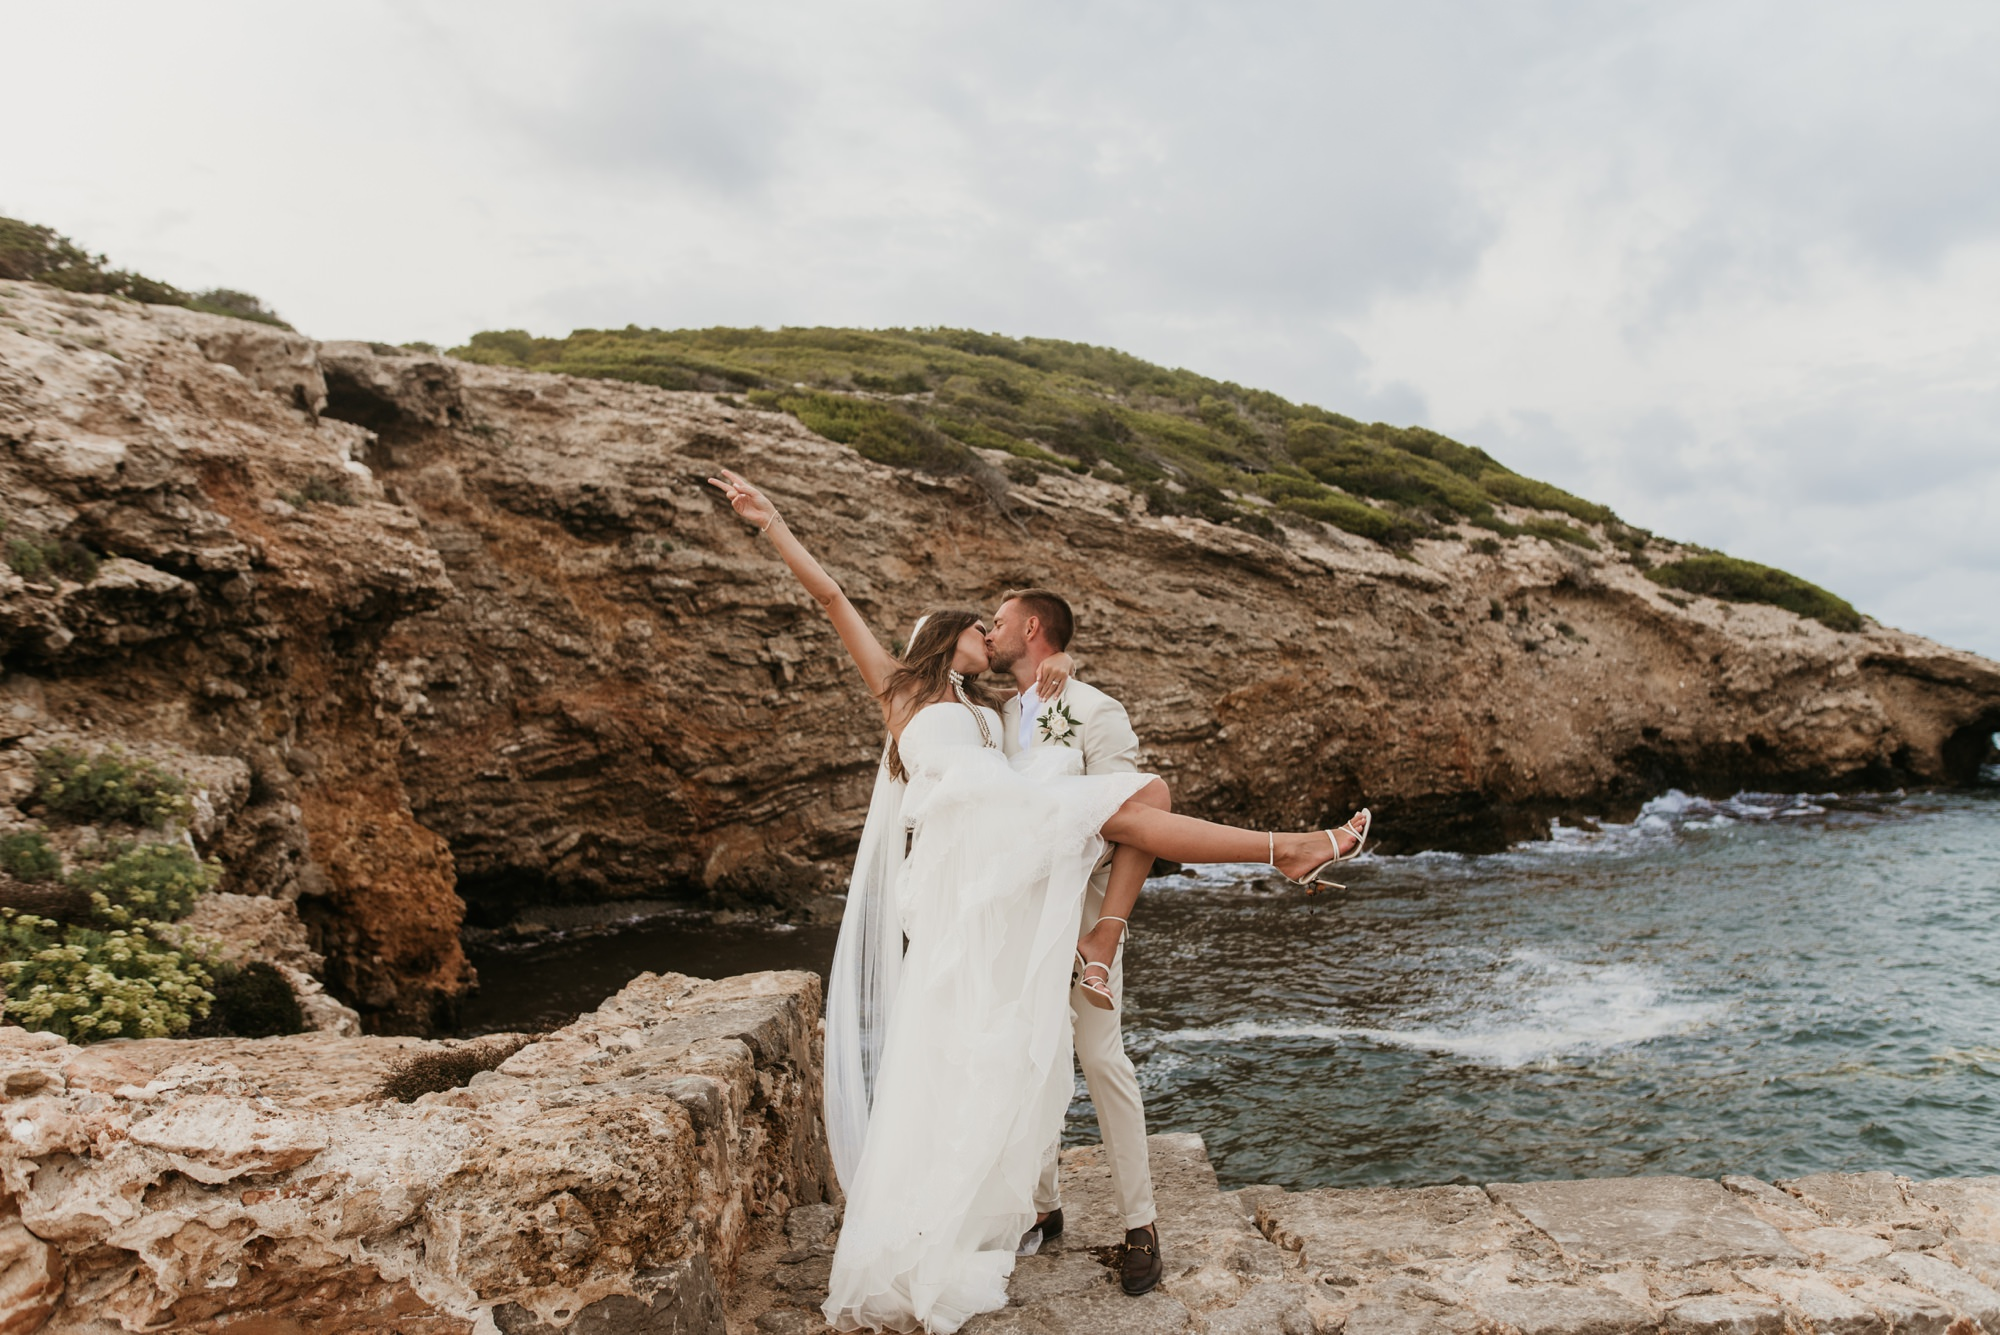 natural wedding photo destination la escollera ibiza 0090 1